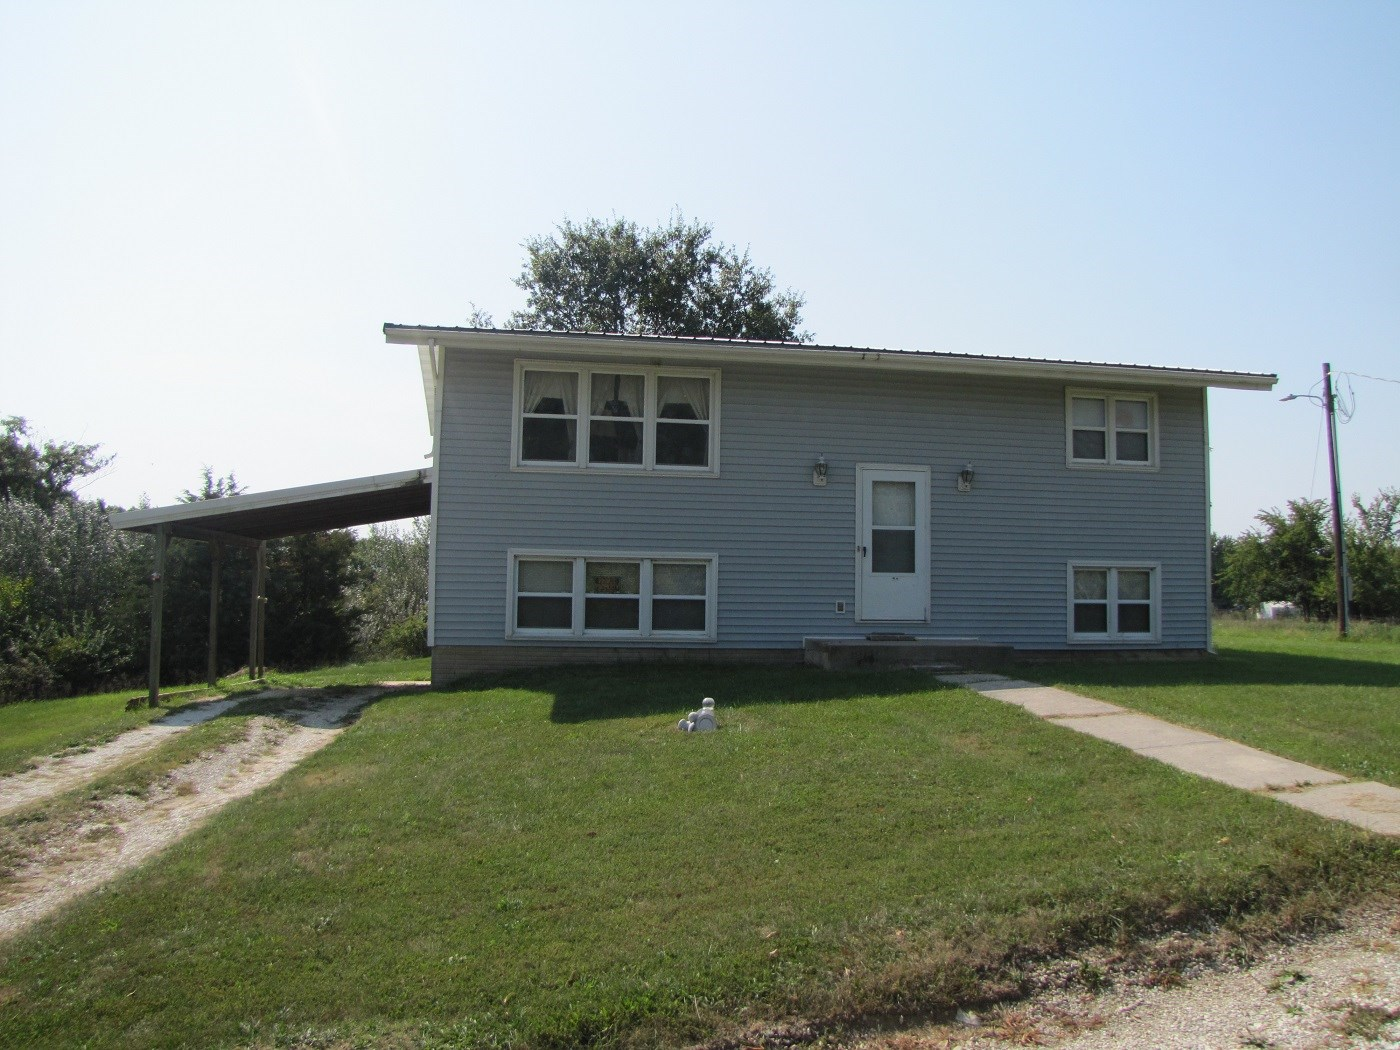 NORTHEAST MO RURAL HOME FOR SALE, SMALL ACREAGE, COUNTRY MO